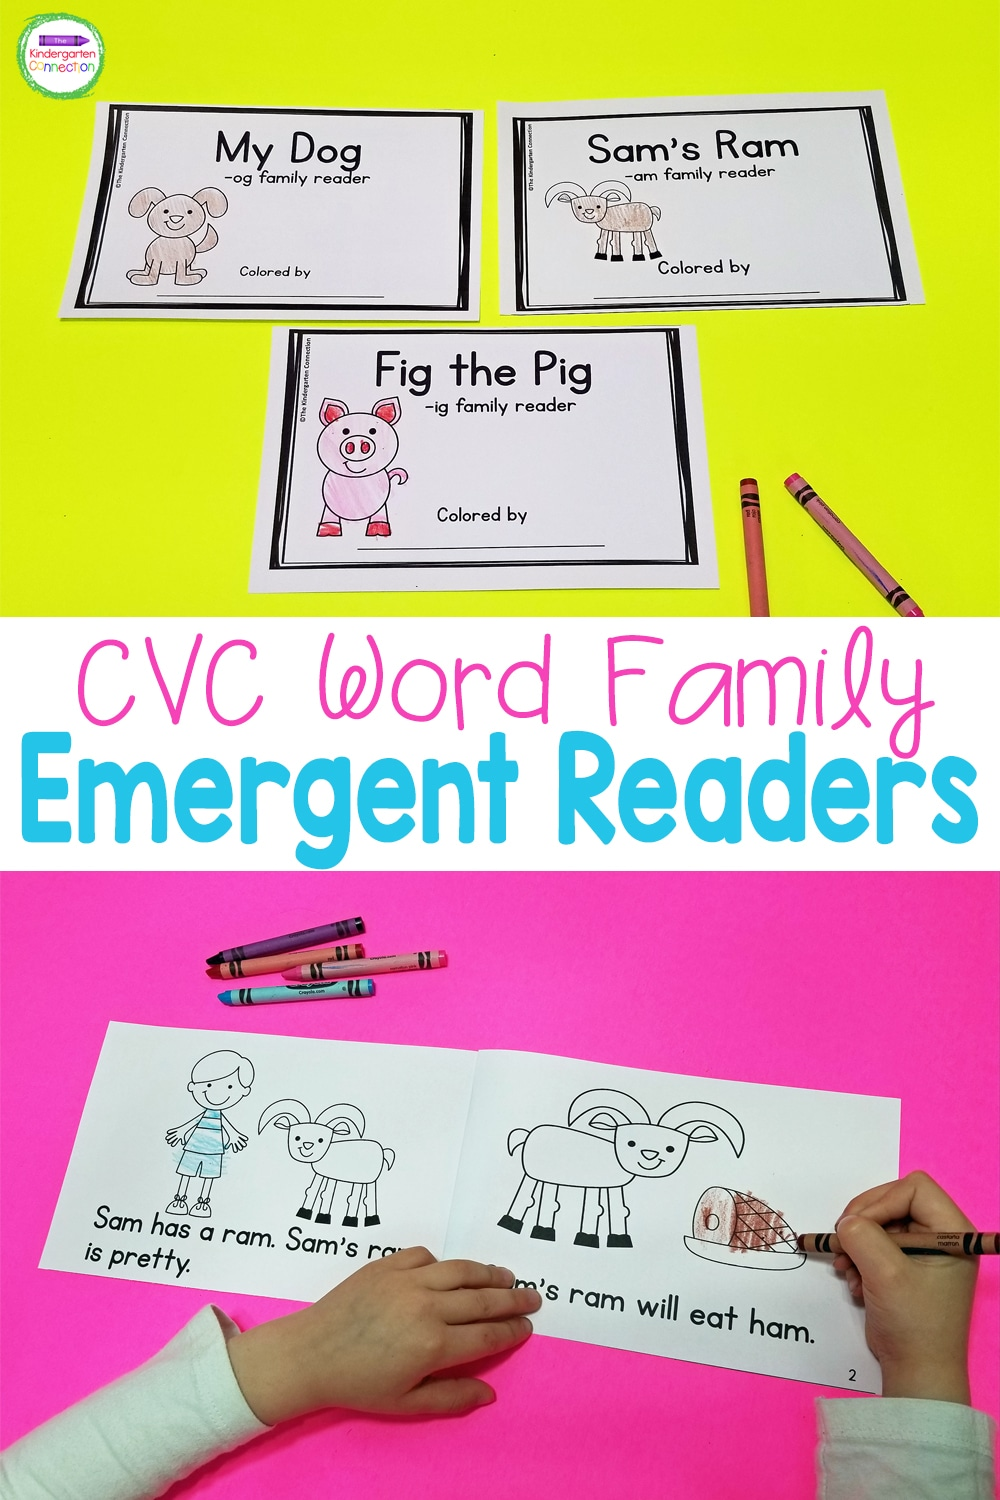 Build fluency and confidence with these 21 CVC Word Family Emergent Readers! Just print, staple, and you're ready to read!